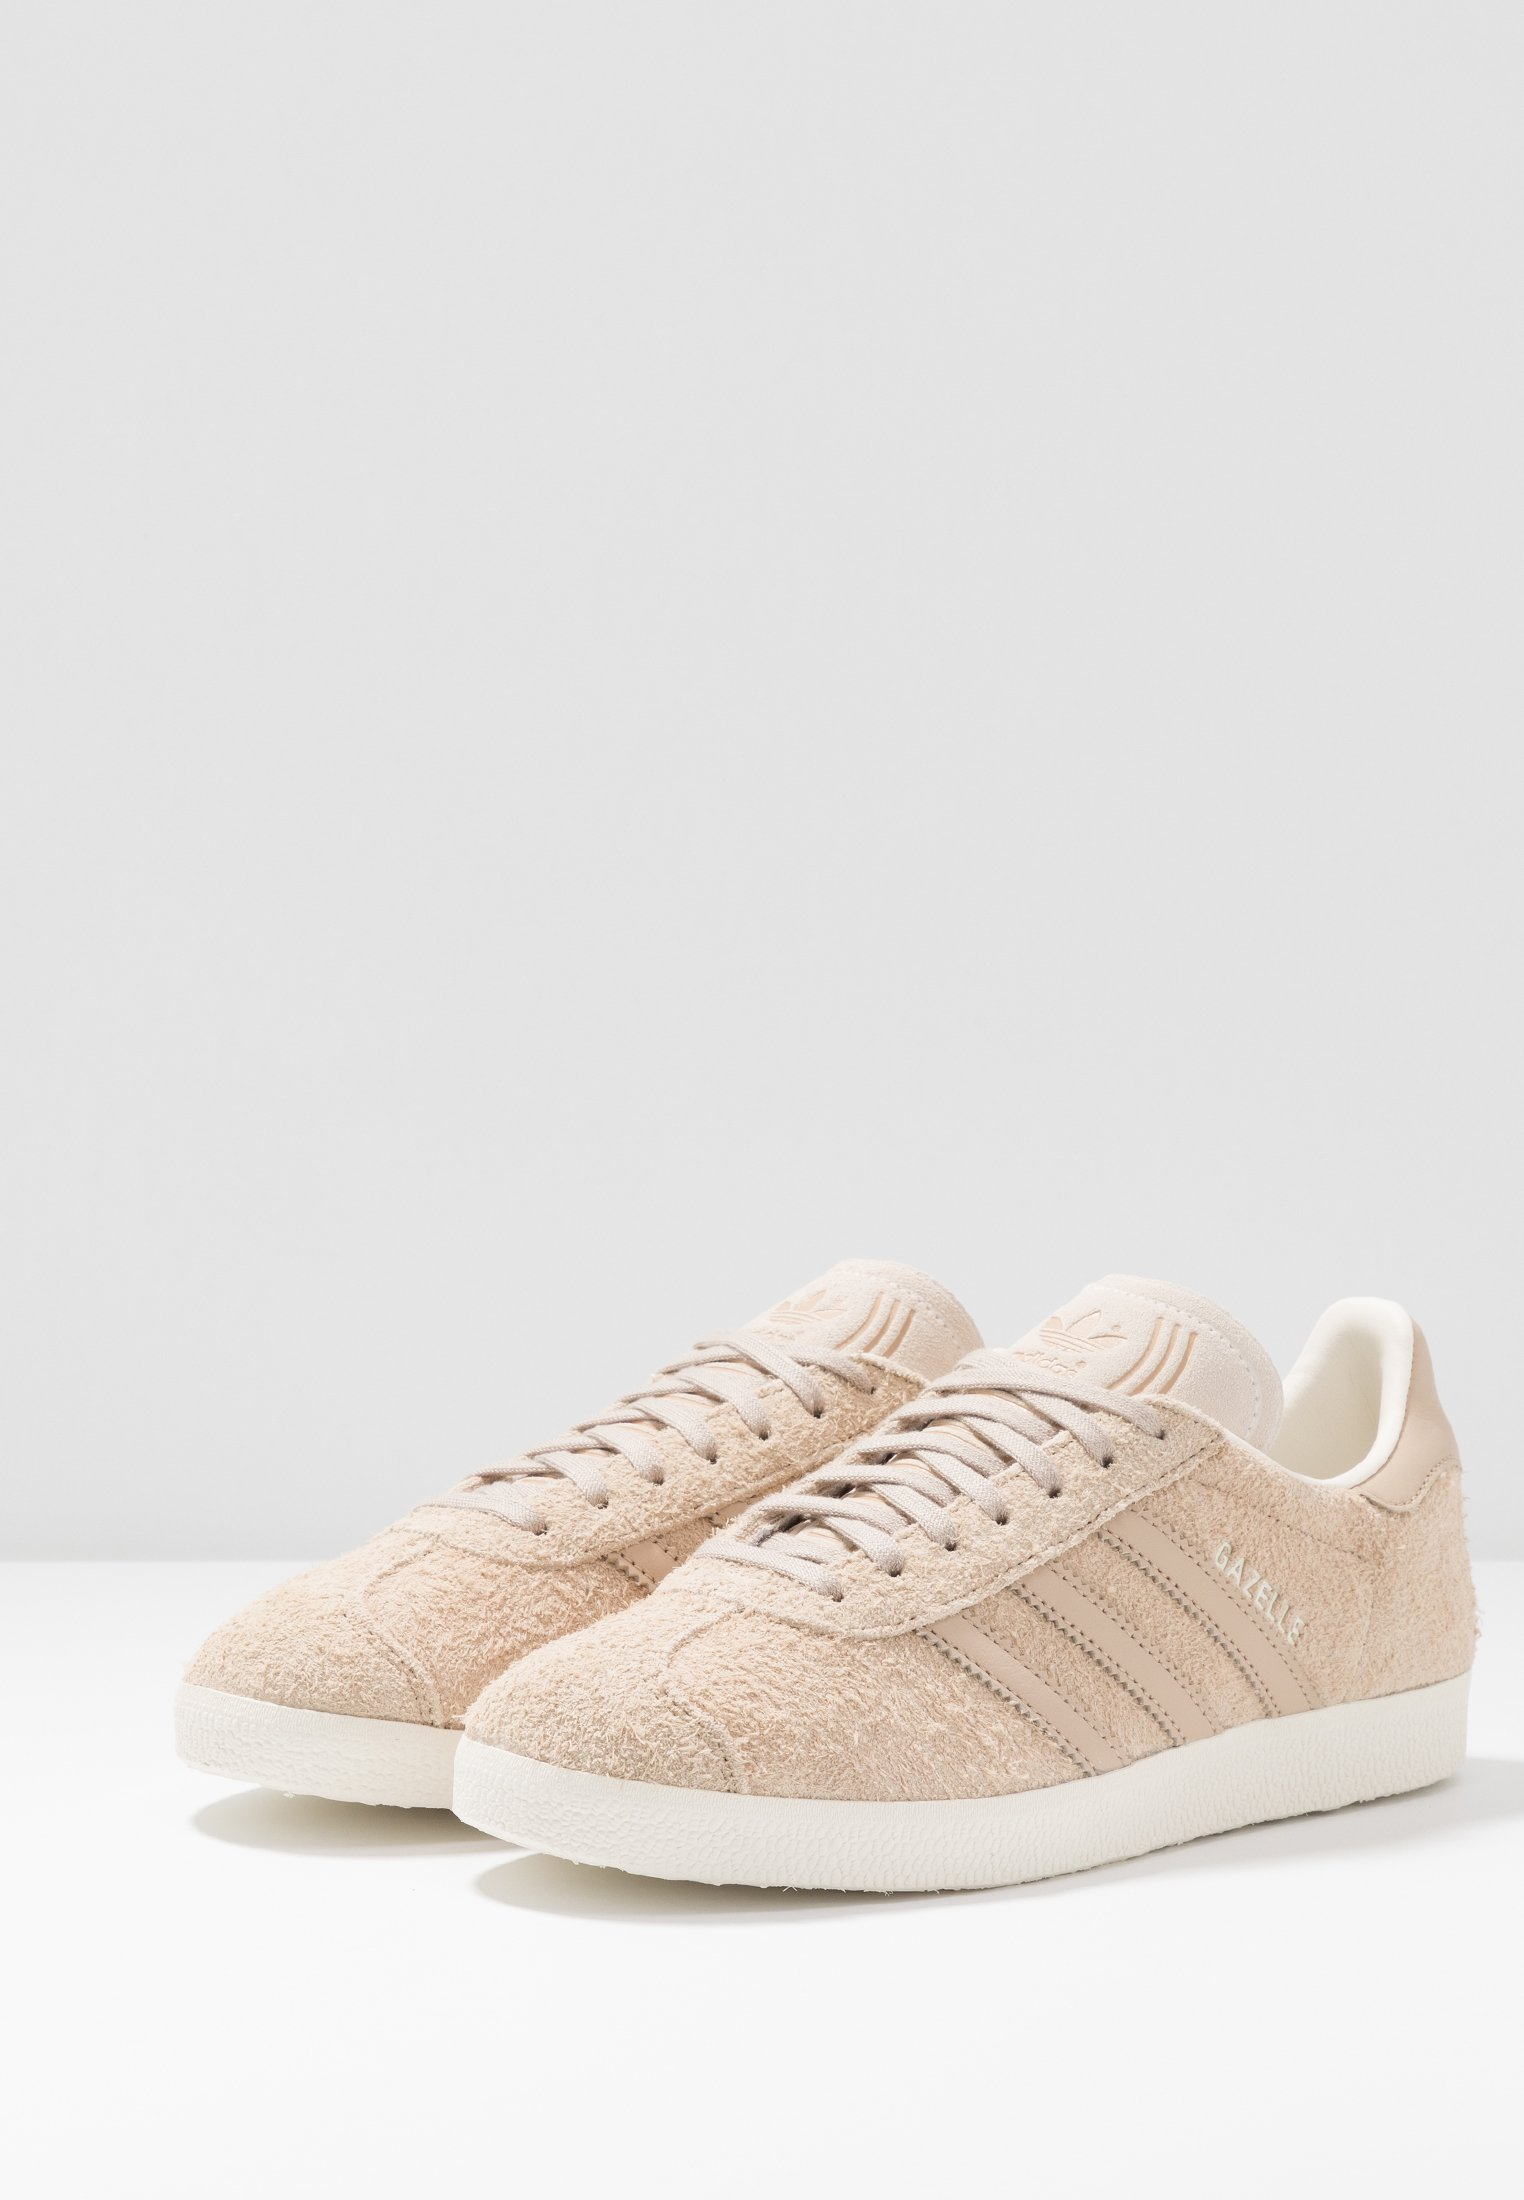 adidas Originals GAZELLE - Baskets basses pale nude/white